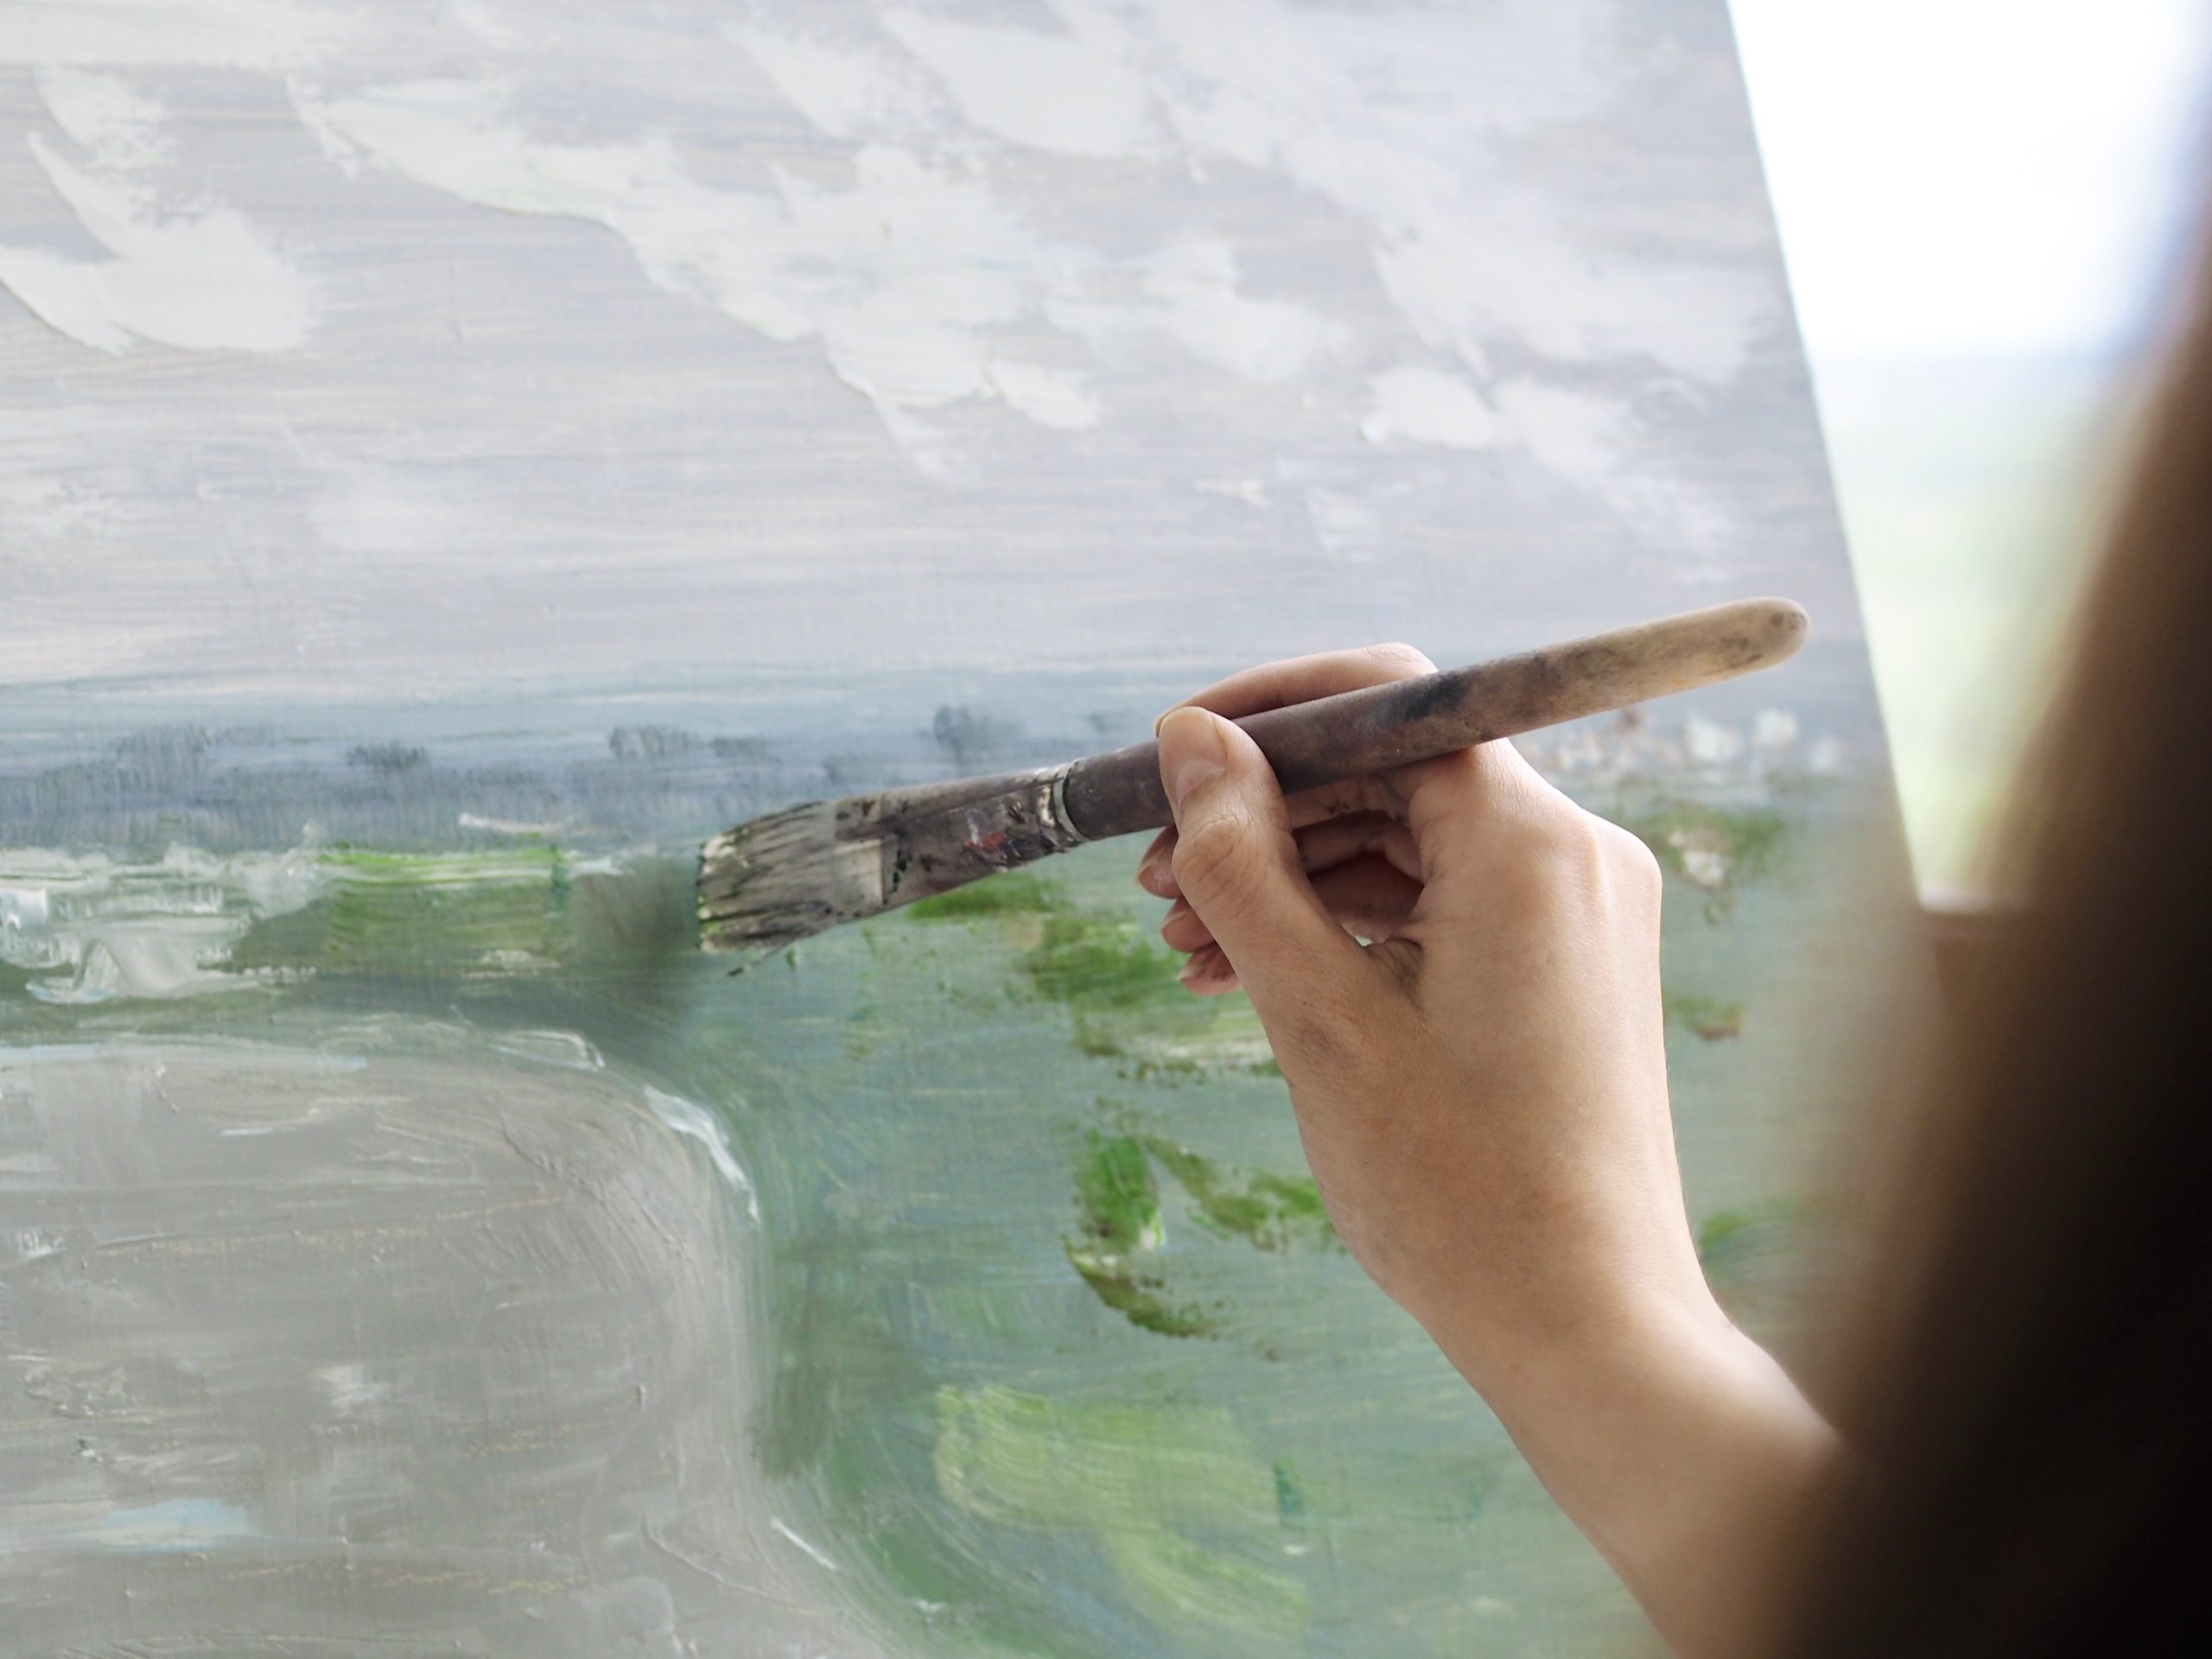 A close up photo of an artist's hand, painting an abstract oil painting in an art studio.